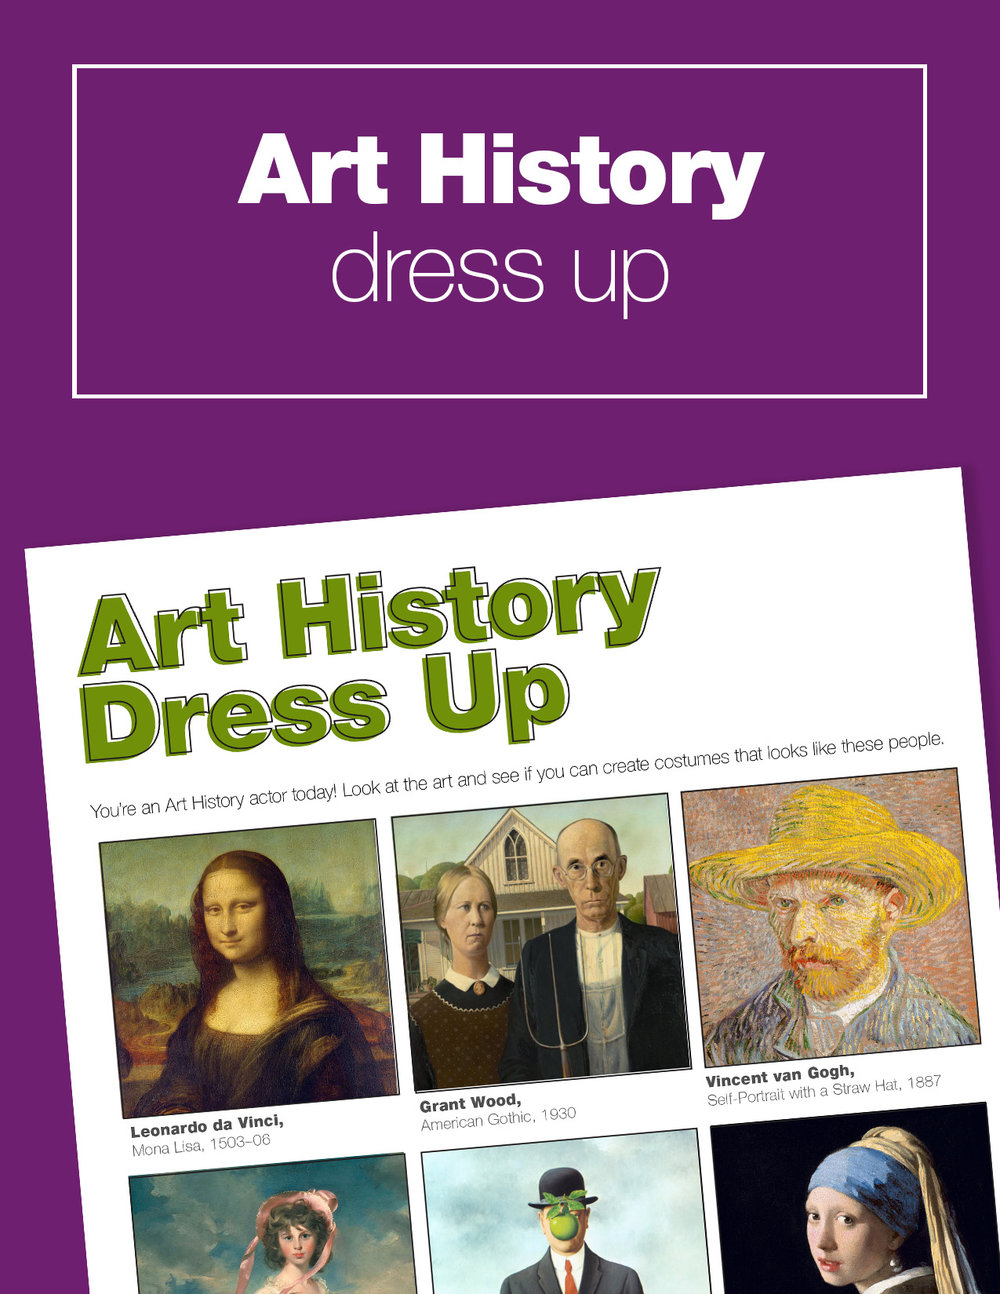 Fun art history lesson for kids... Play the art history dress up game! Download your free activity guide to get started.